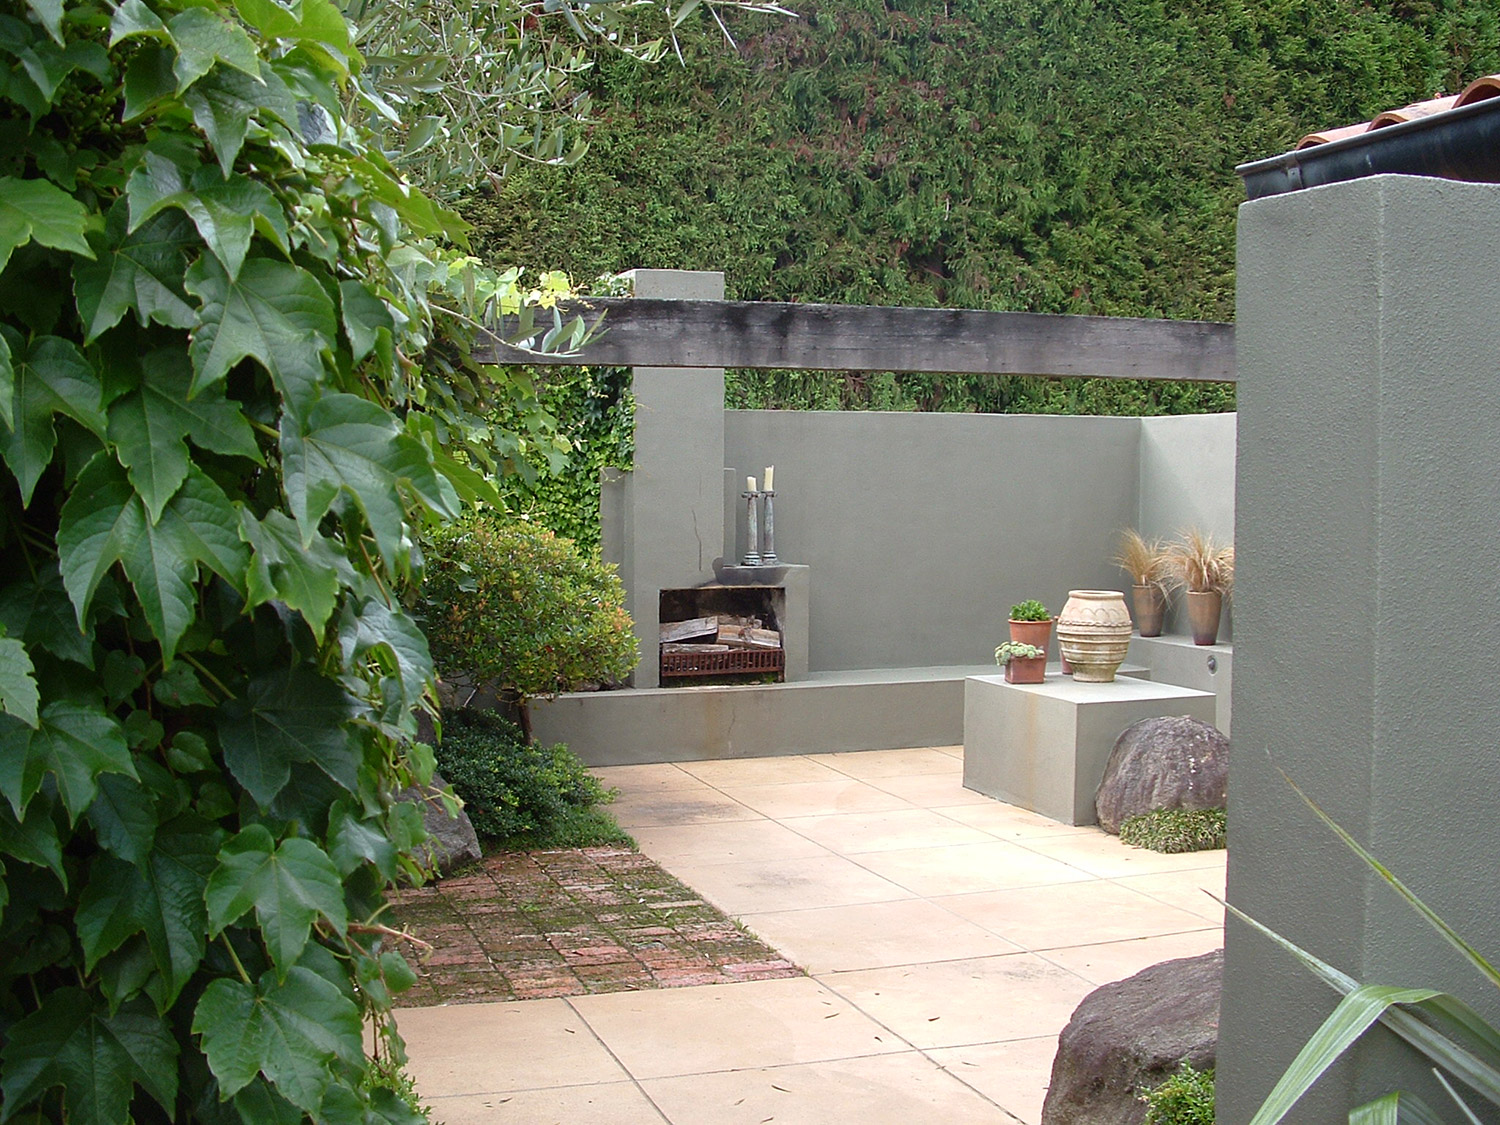 Landscaped Courtyard Garden Design With Outdoor Dining Room